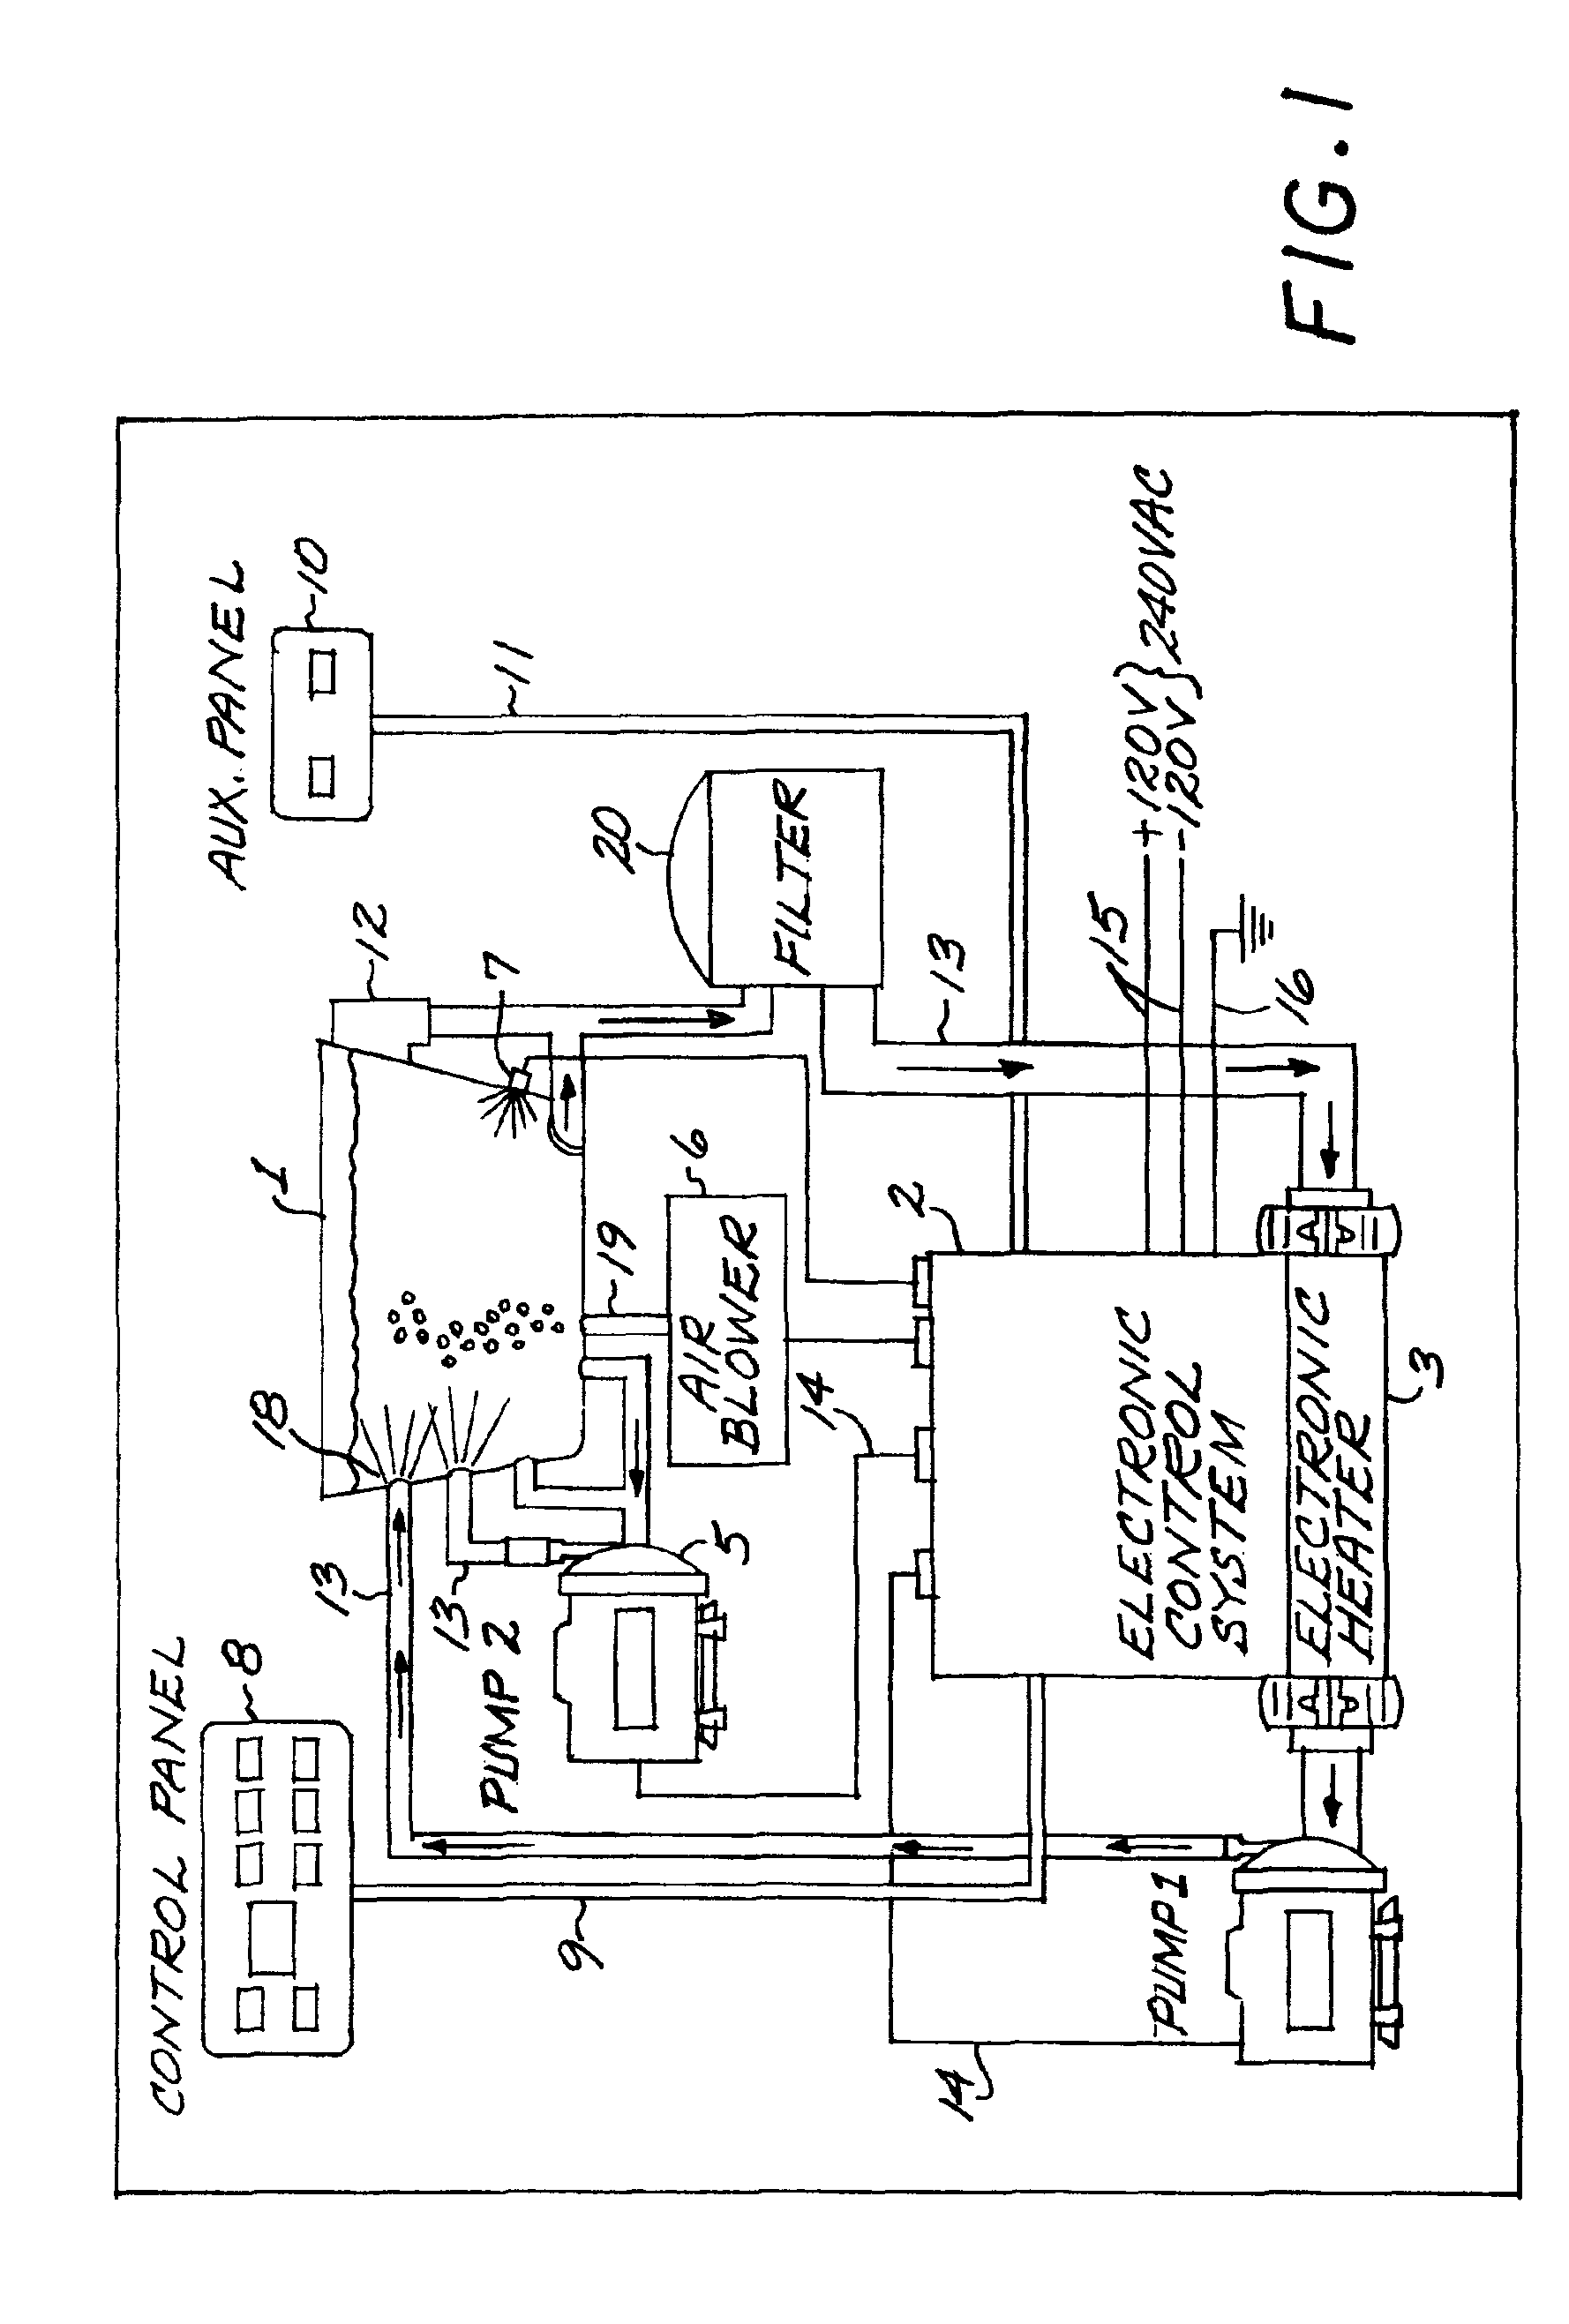 Cal Spa Pump Wiring Diagram